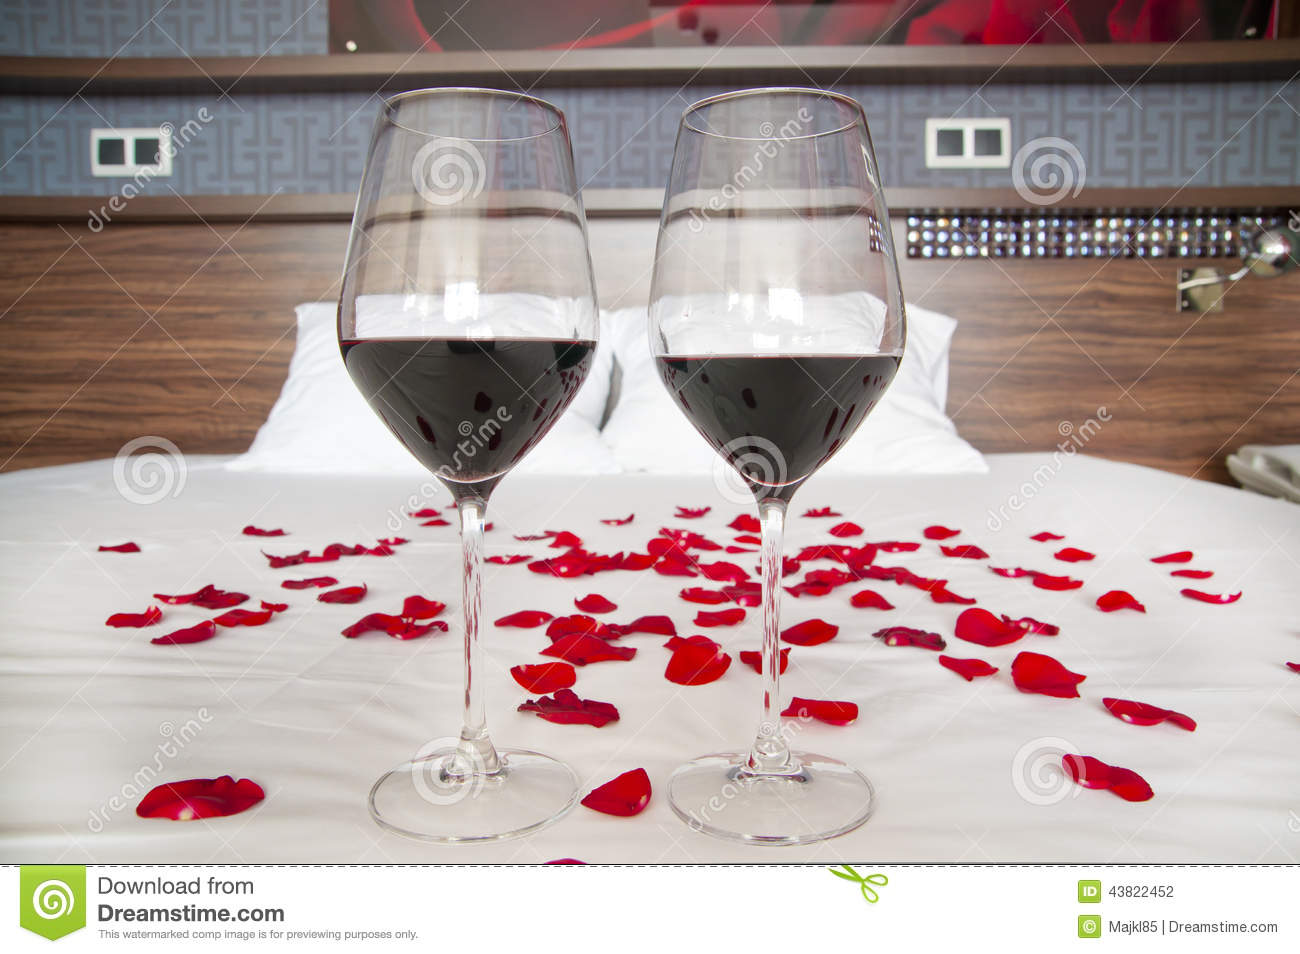 Romantic Bedroom Glasses Of Red Wine And Rose Petals On